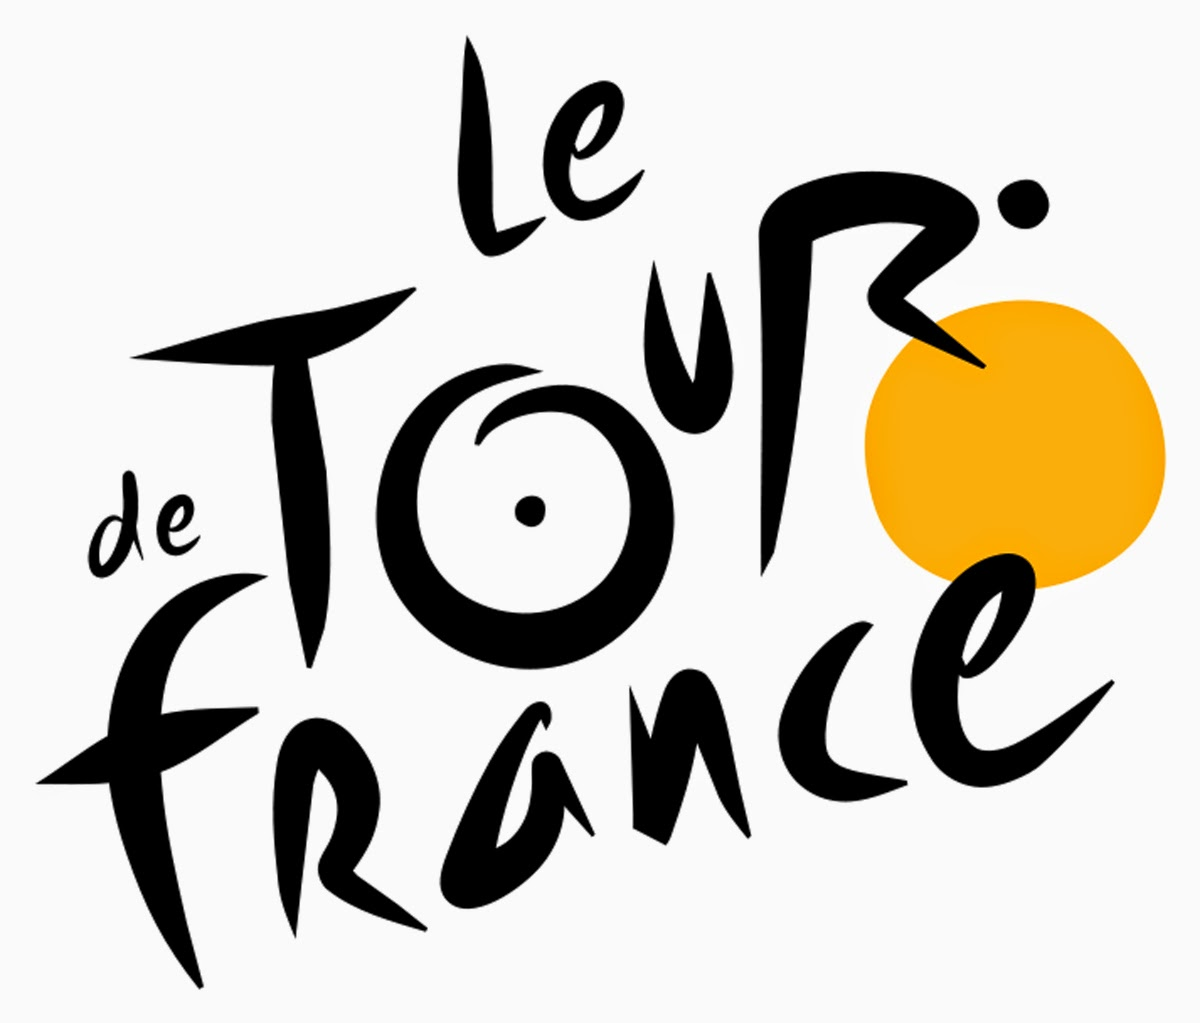 Bytes: More Tour de France Facts and Trivia